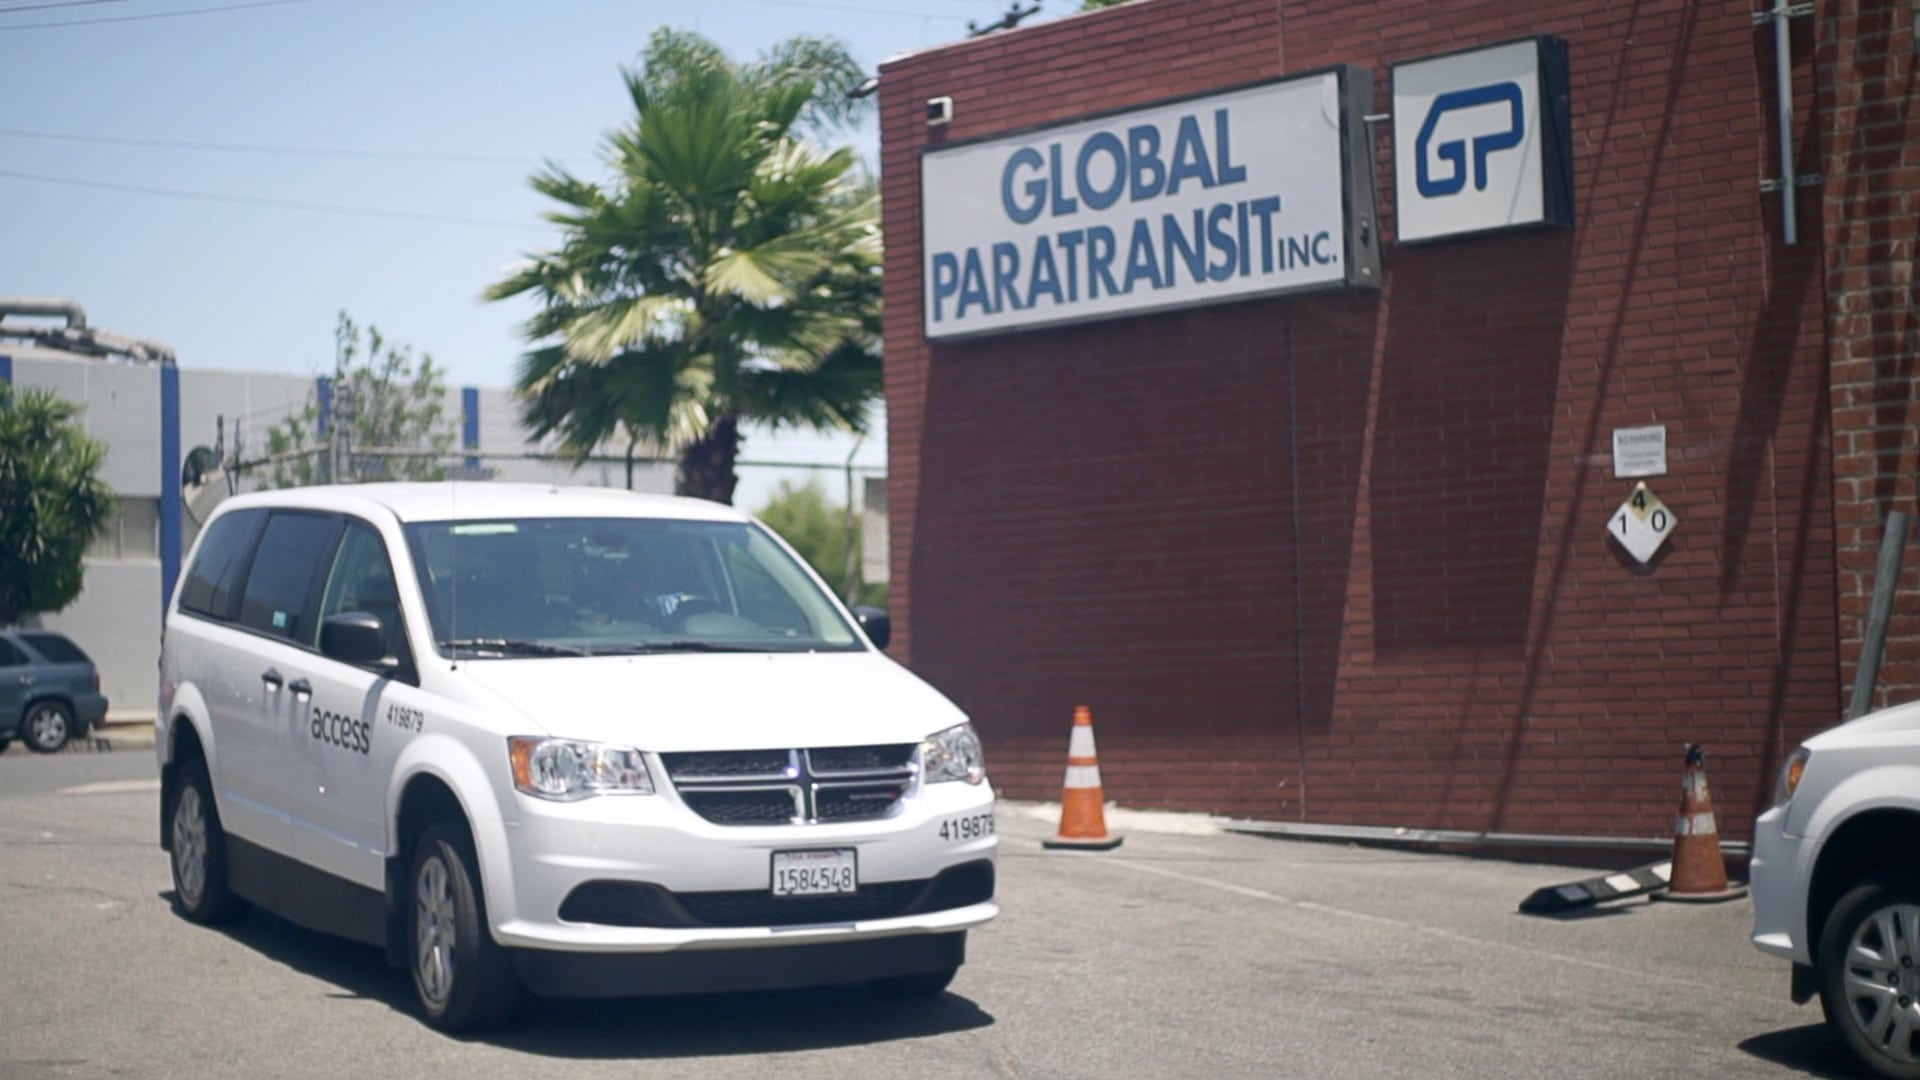 GPI Entrance Van Frame Global Paratransit